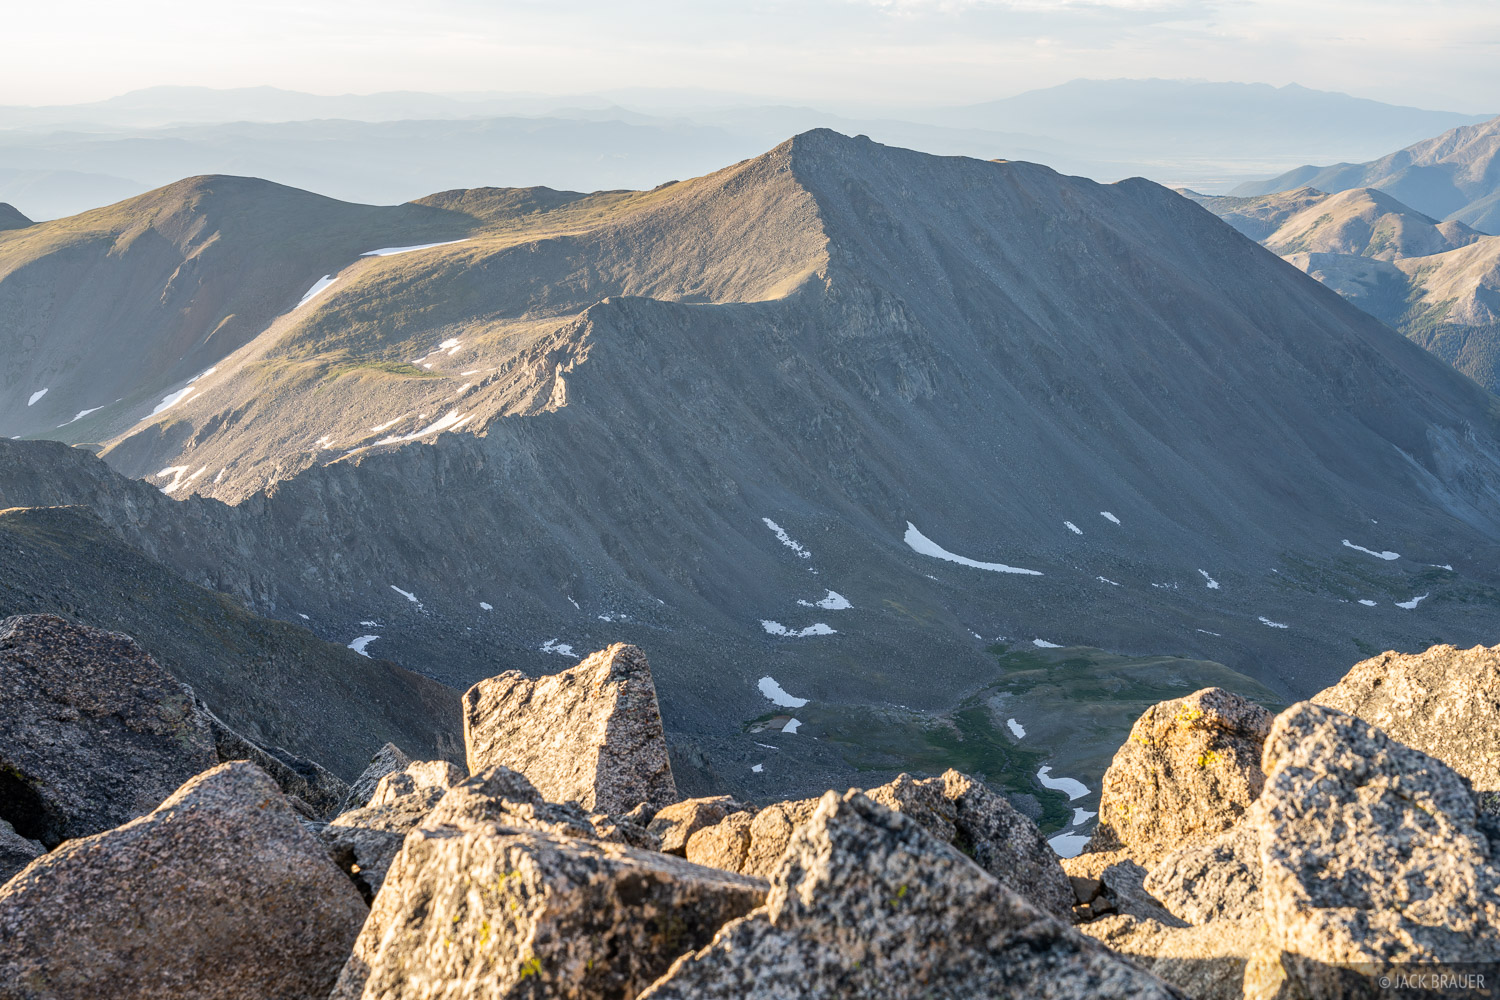 Collegiate Peaks Wilderness, Colorado, Mount Columbia, Mount Harvard, Sawatch Range, fourteener, photo